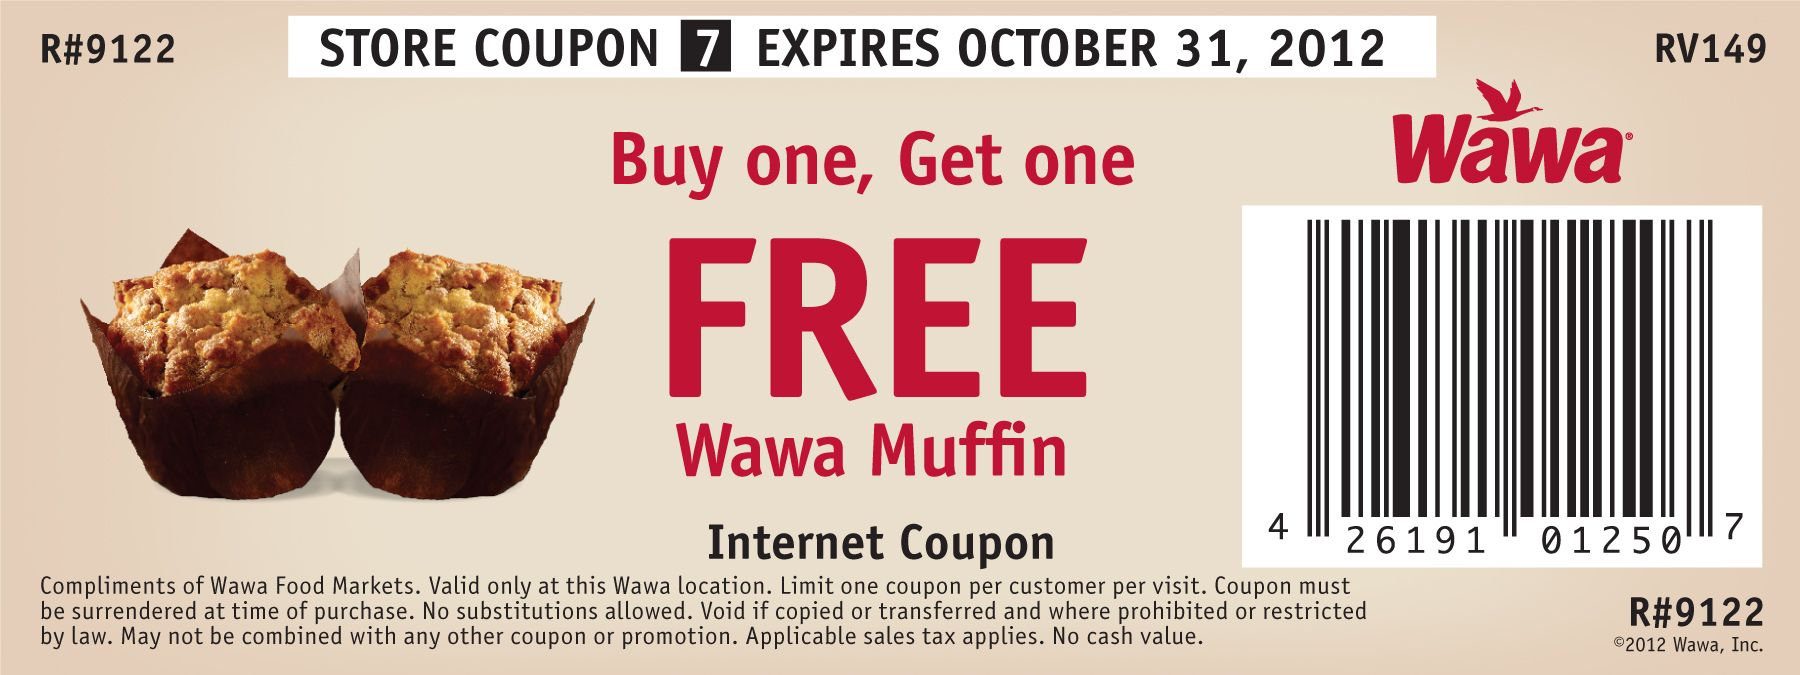 photo regarding Wawa Coupons Printable named WAWA COUPON!!!! Youngsters Higher education Lunch Muffins, Children lunch